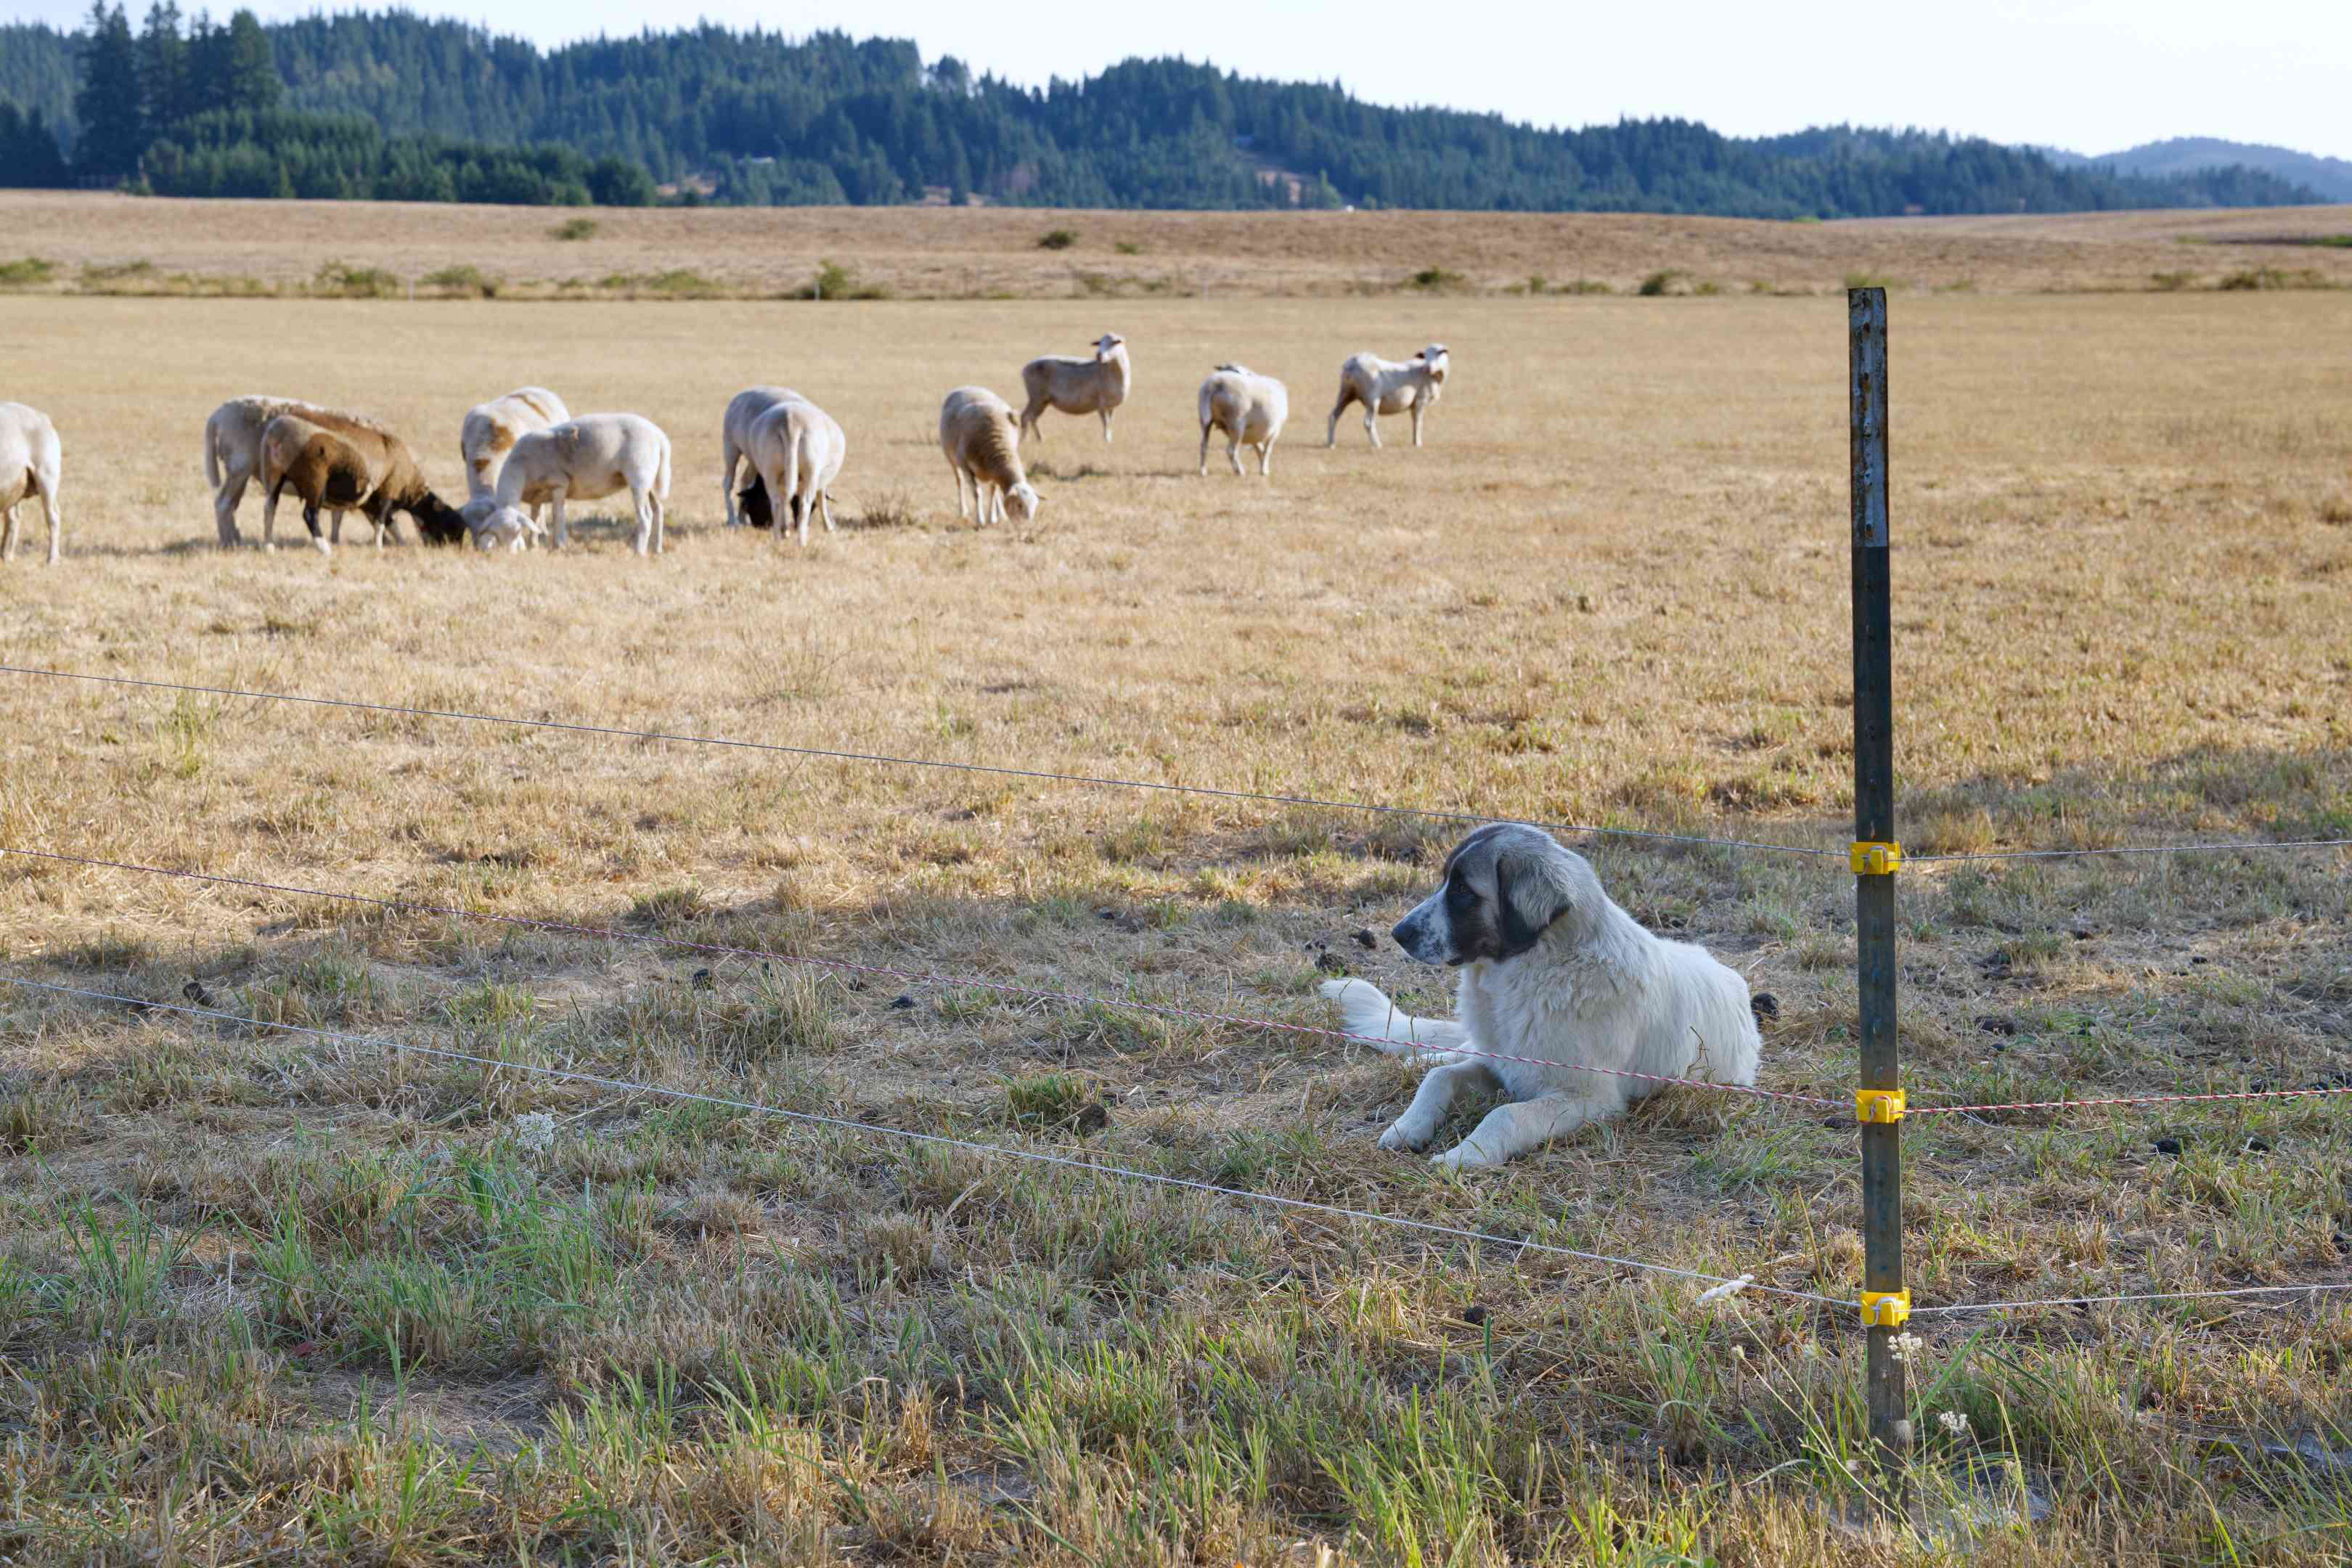 sheep-herding dog lays in open pasture and guards his sheep next to wire fence